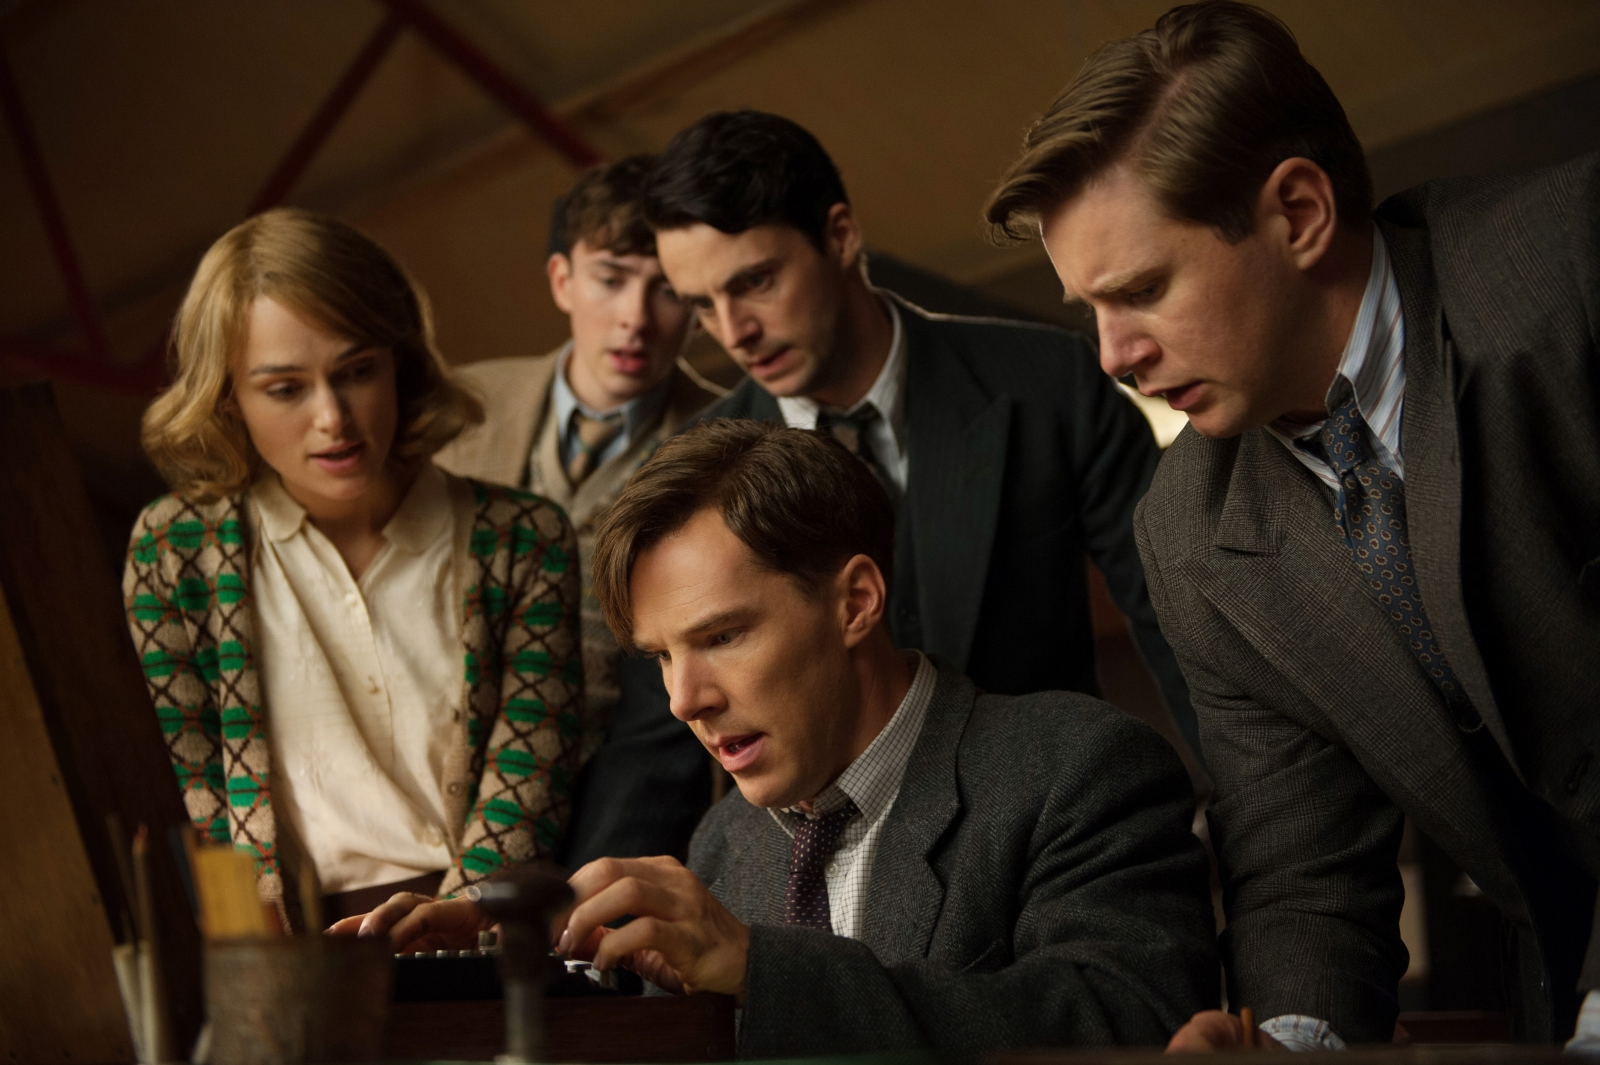 Joan Clarke was definitely one of the lads, as far as Alan Turing was concerned